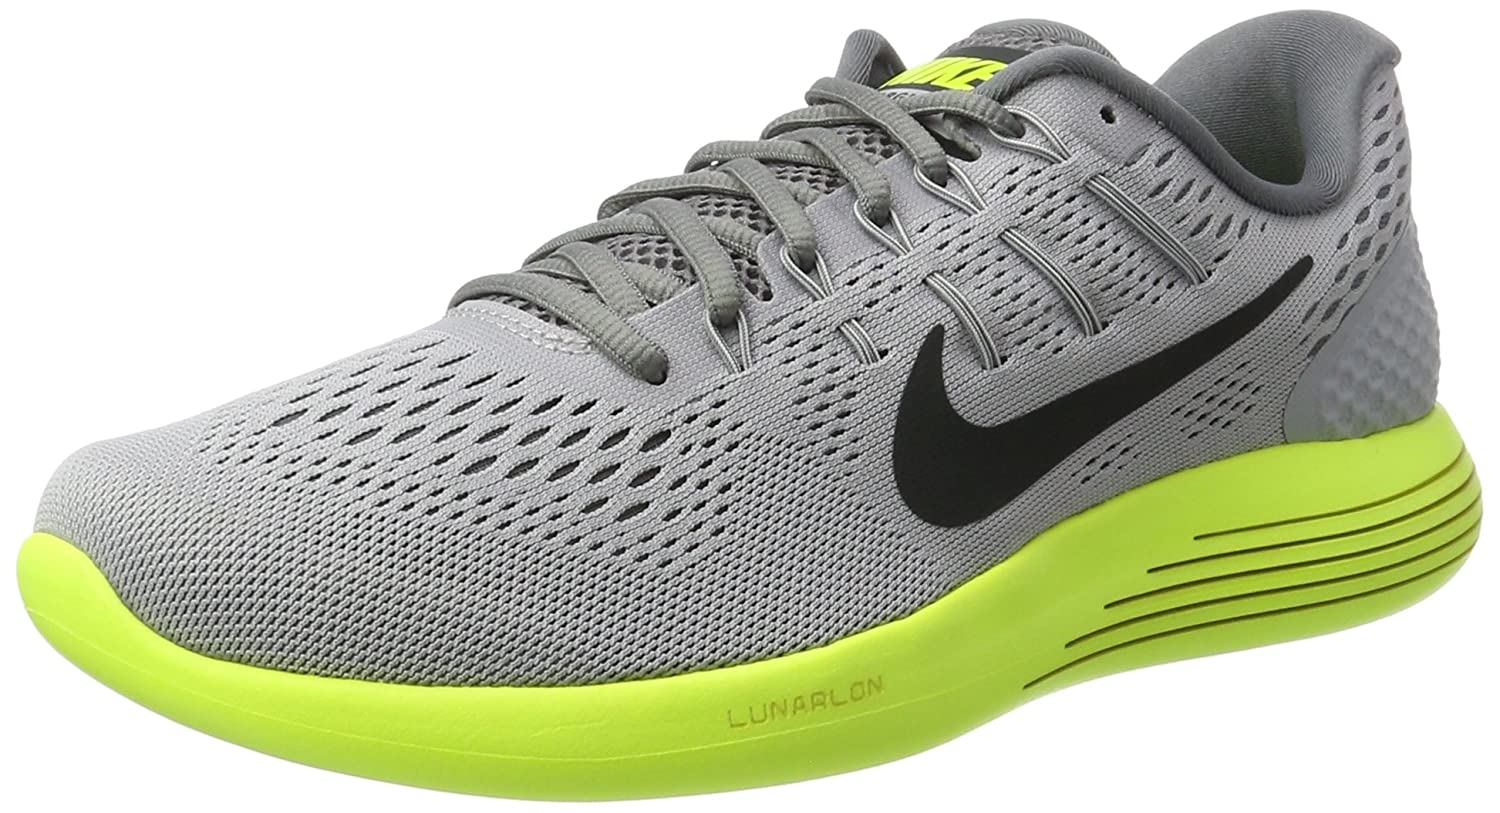 d29f660328c8 Nike Lunarglide 8 Wolf Grey Anthracite Volt Cool Grey Mens Running Shoes   Buy Online at Low Prices in India - Amazon.in